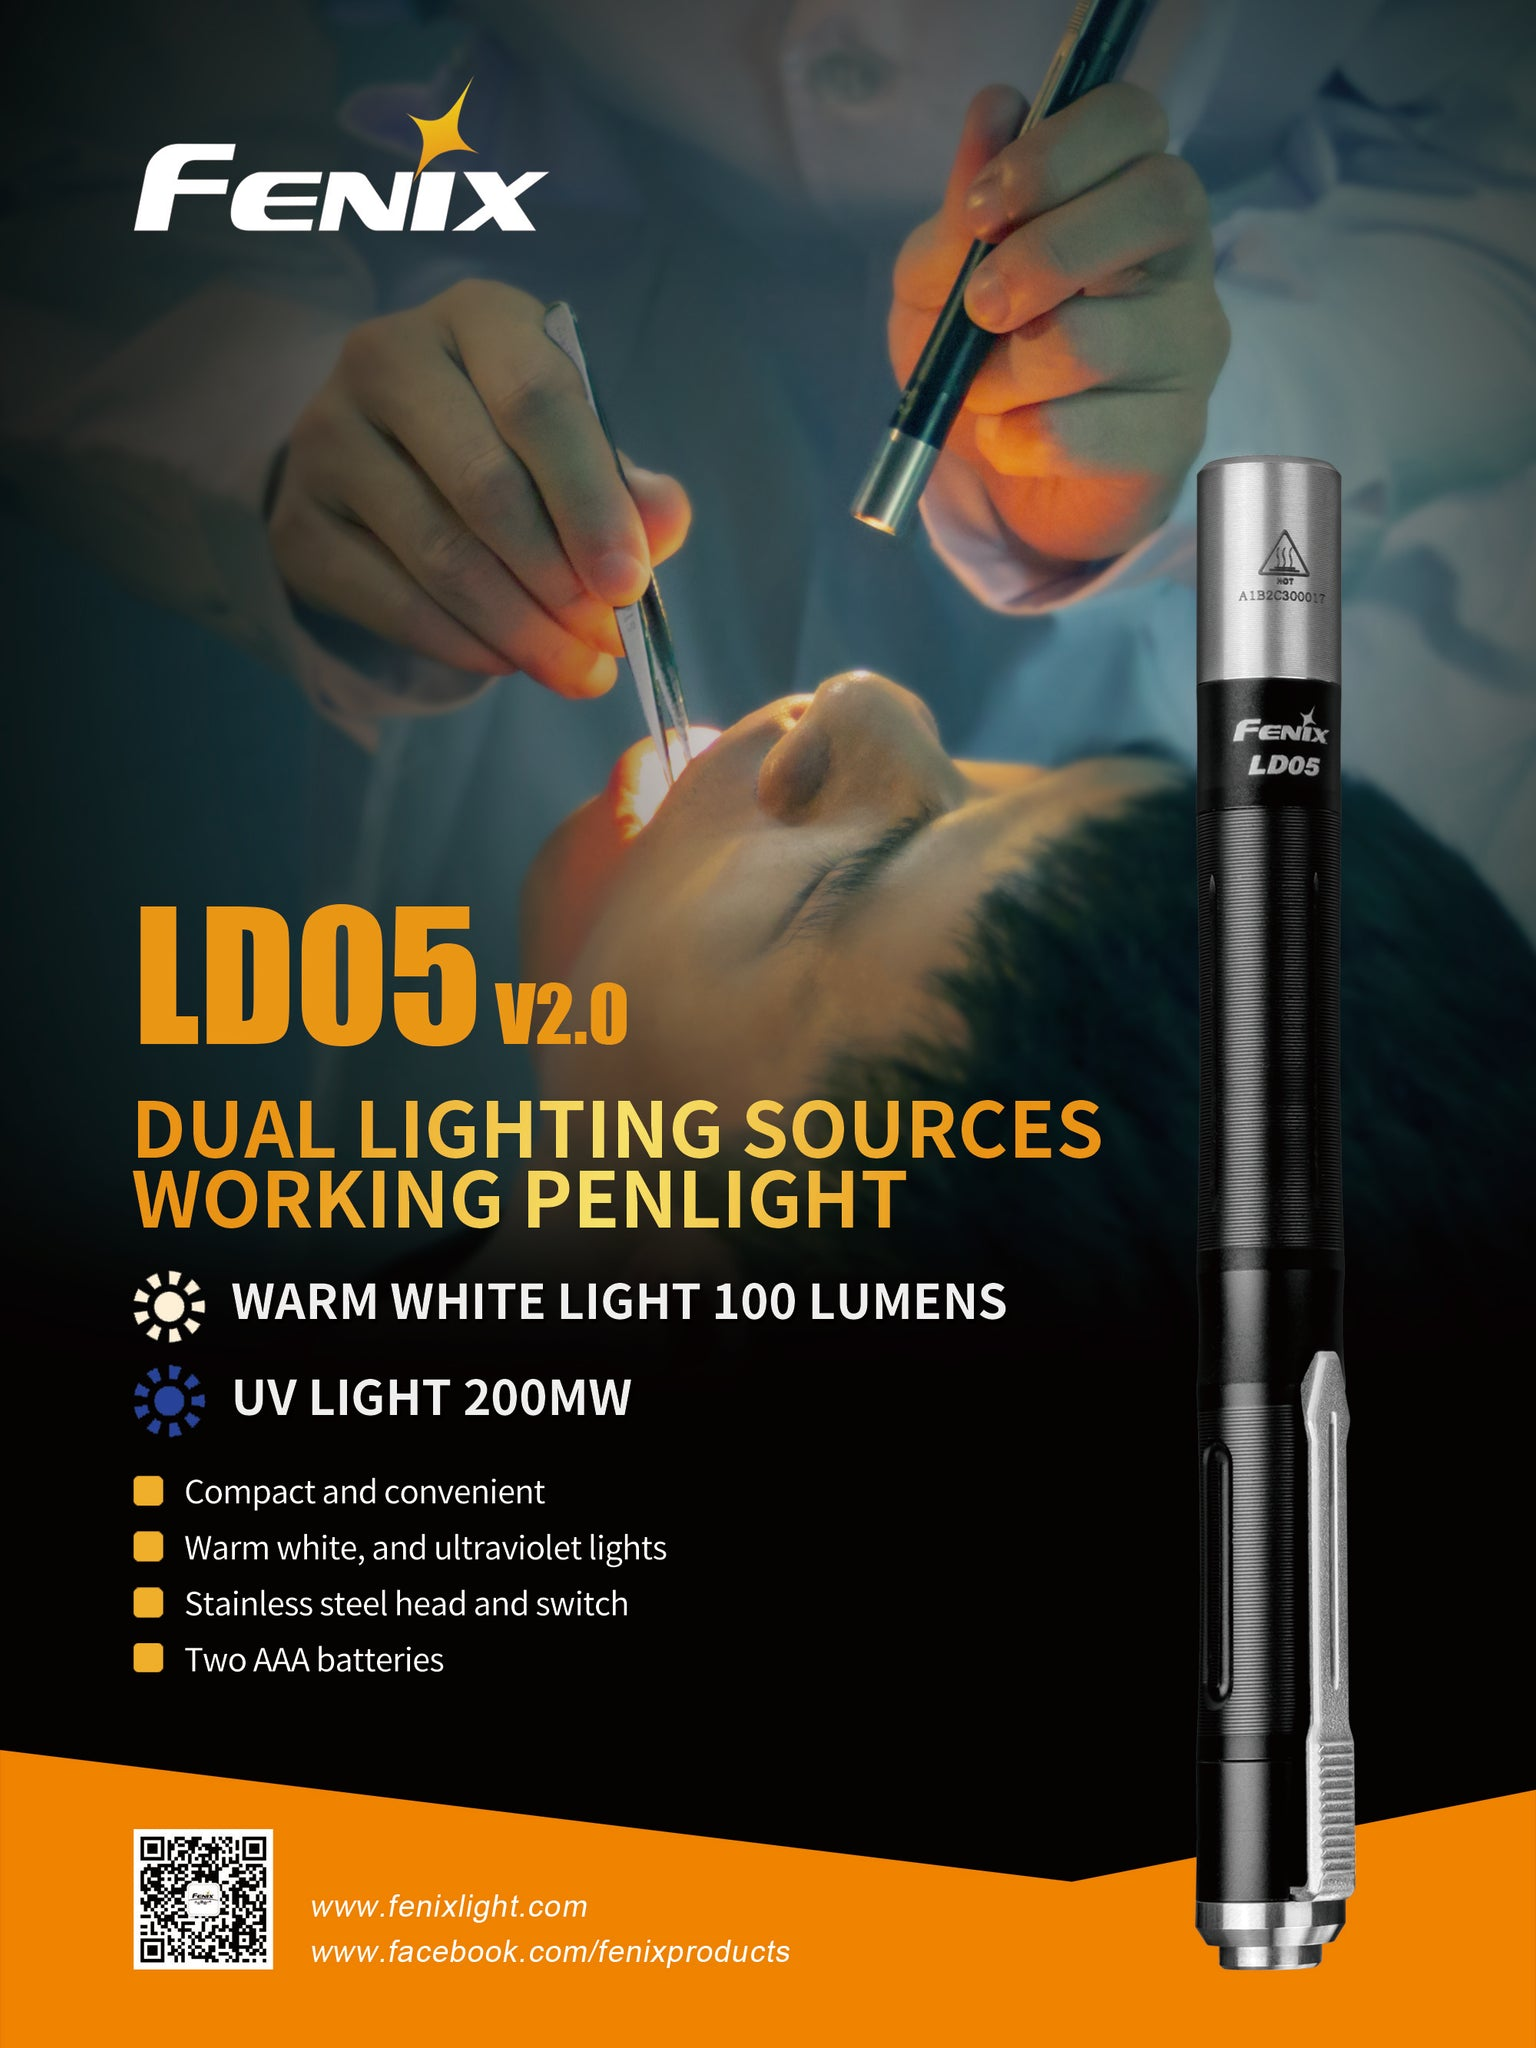 Fenix Ld05 LED Torch, Mini Portable Pen Light LED Flashlight Pocket Medical Doctor Torch Light